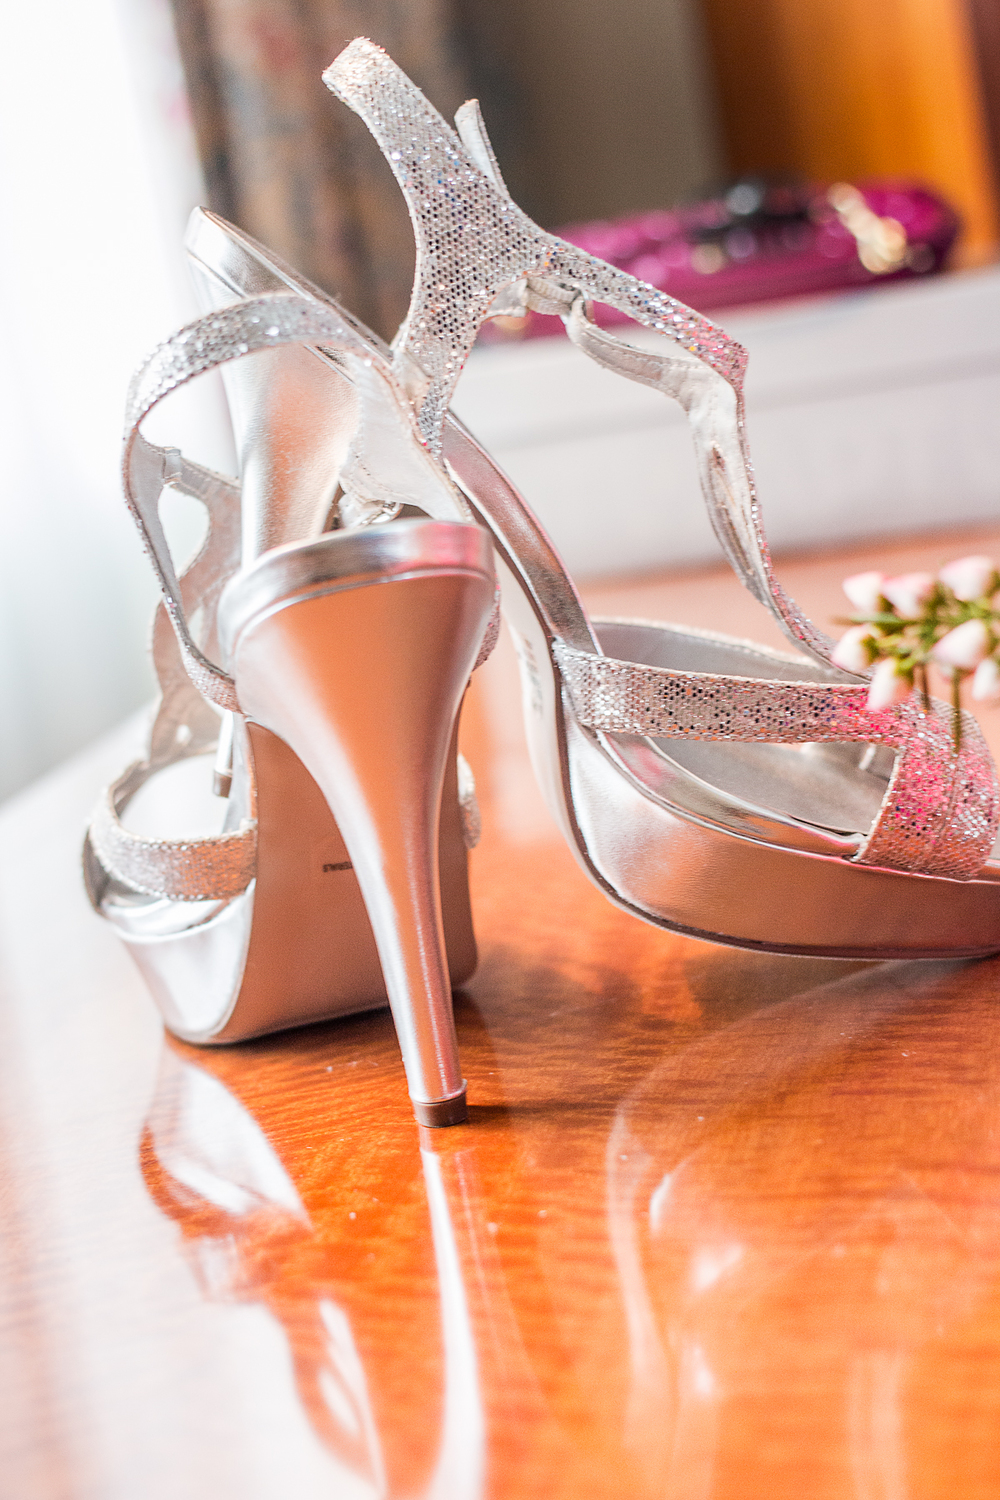 Wedding Shoe Photography